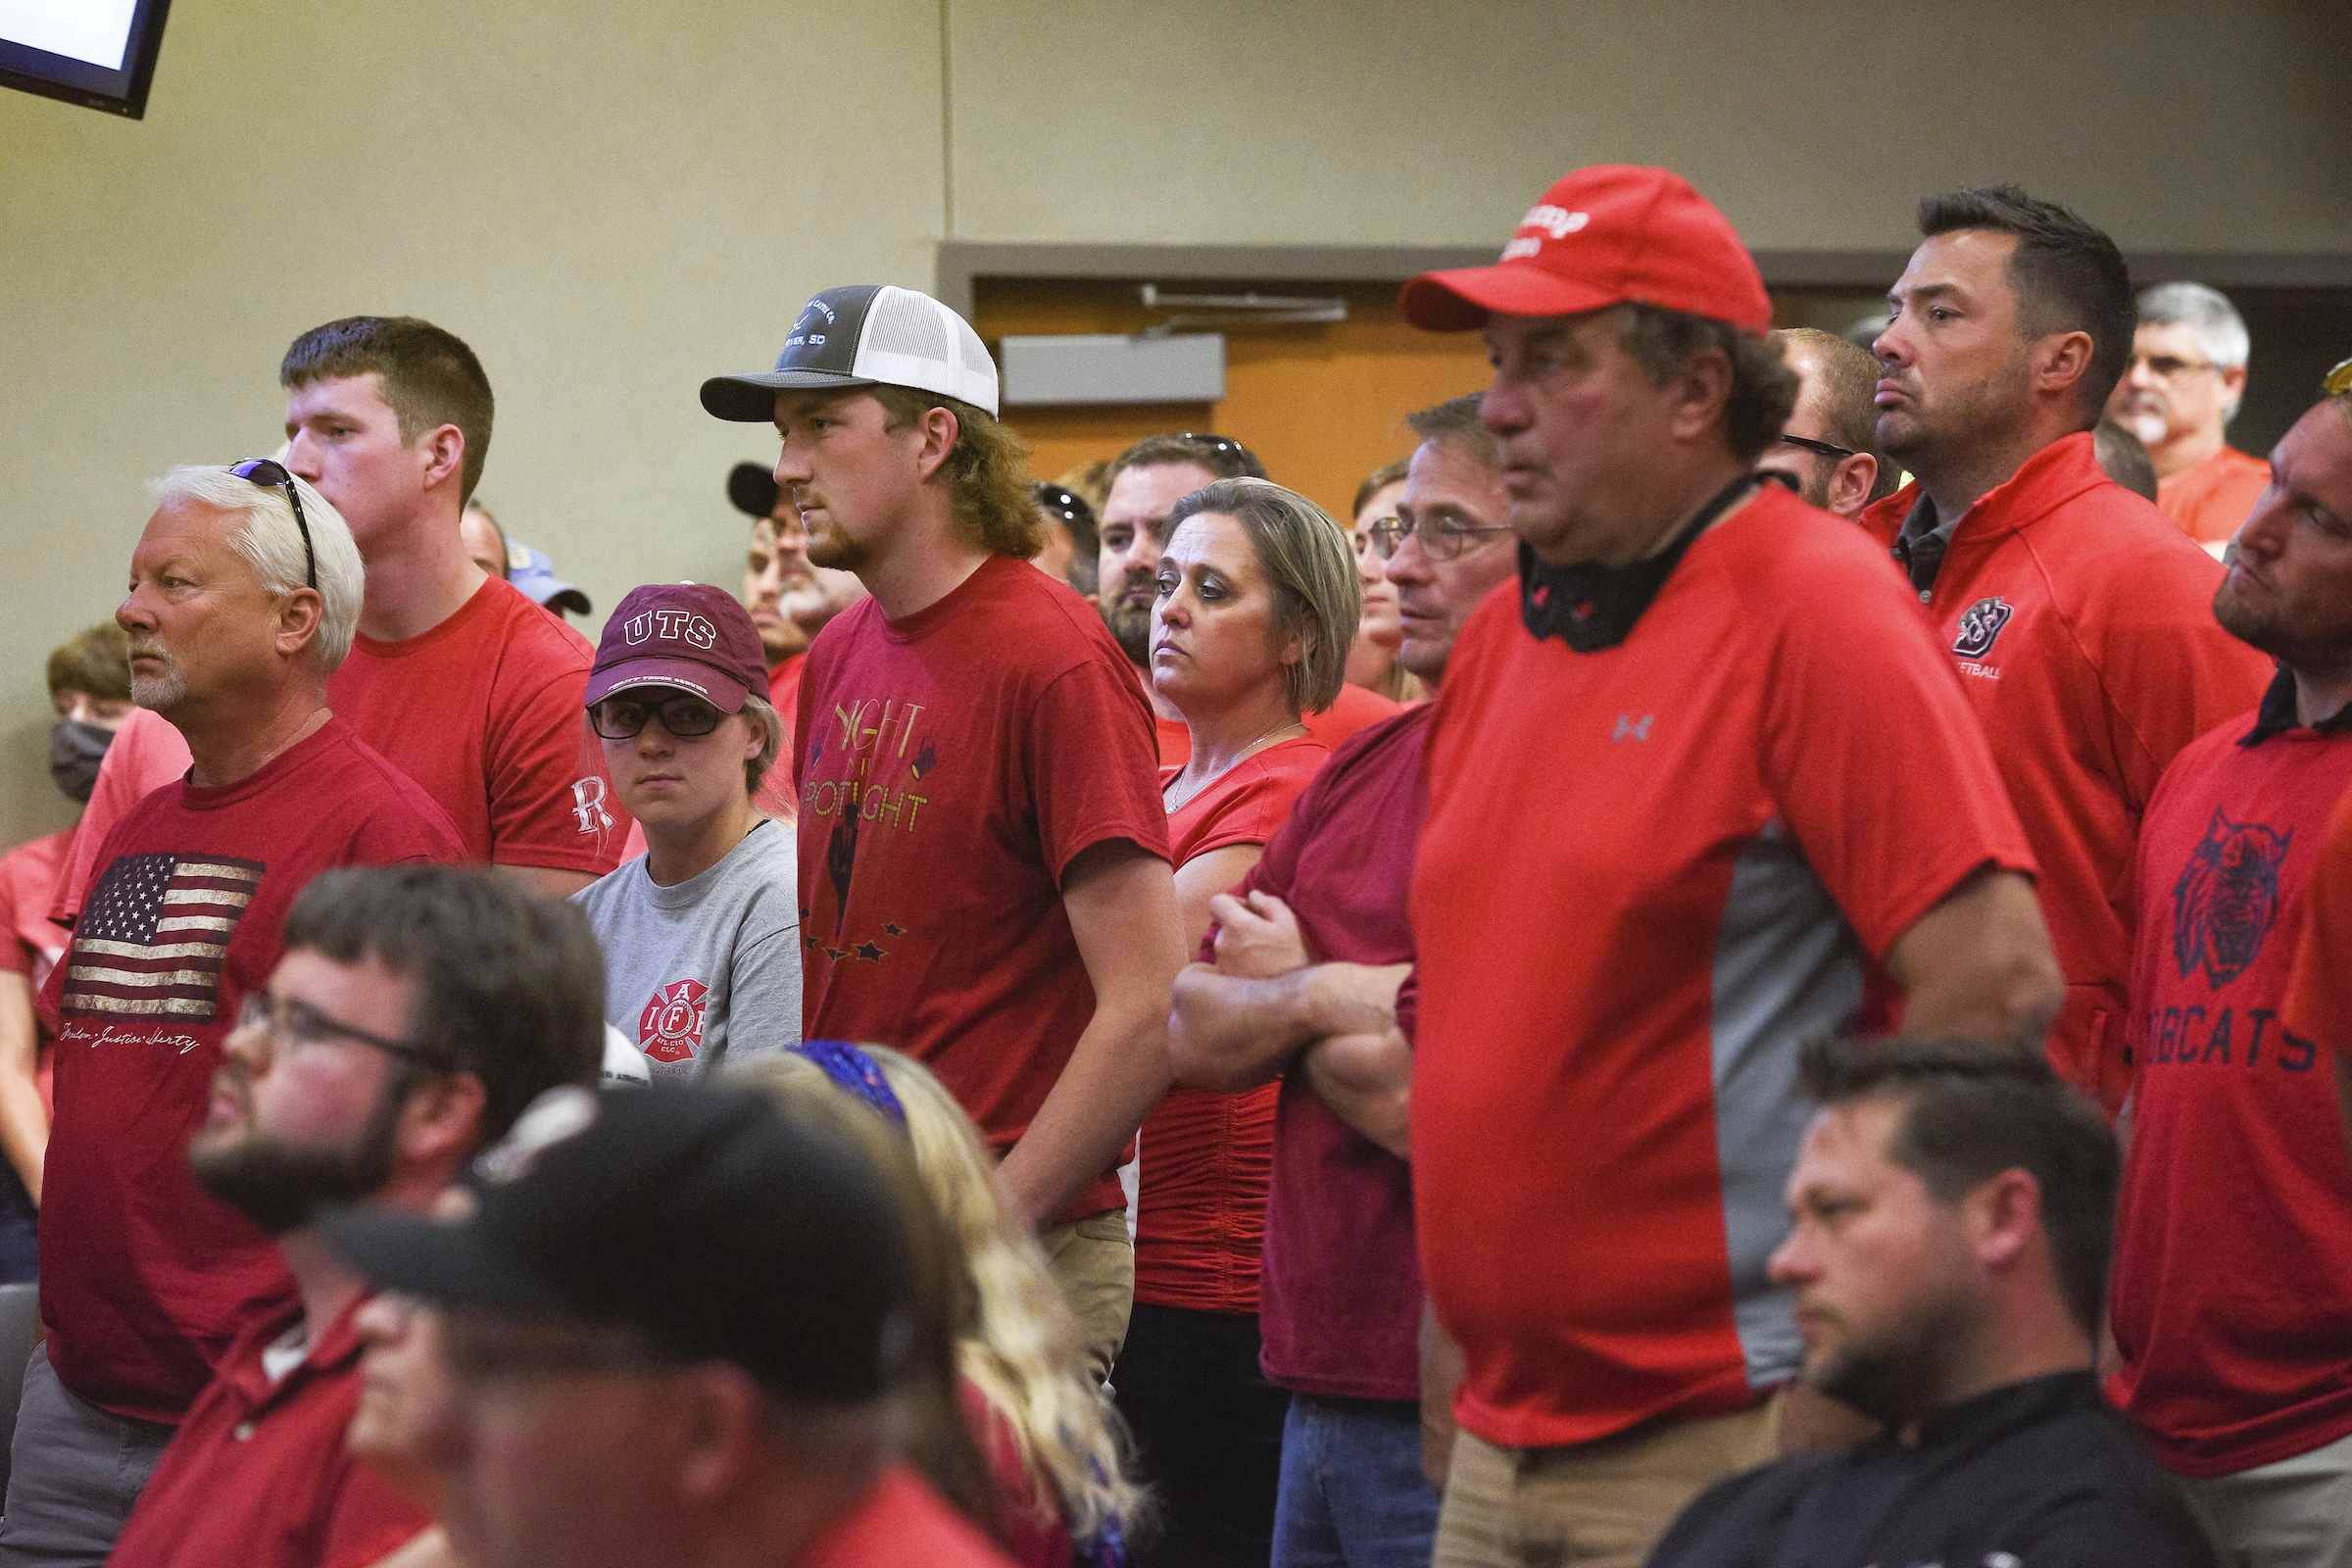 Over 200 people wear red in solidarity against a potential city-wide mask mandate during a city council meeting on Sept. 2, in Brookings, S.D.